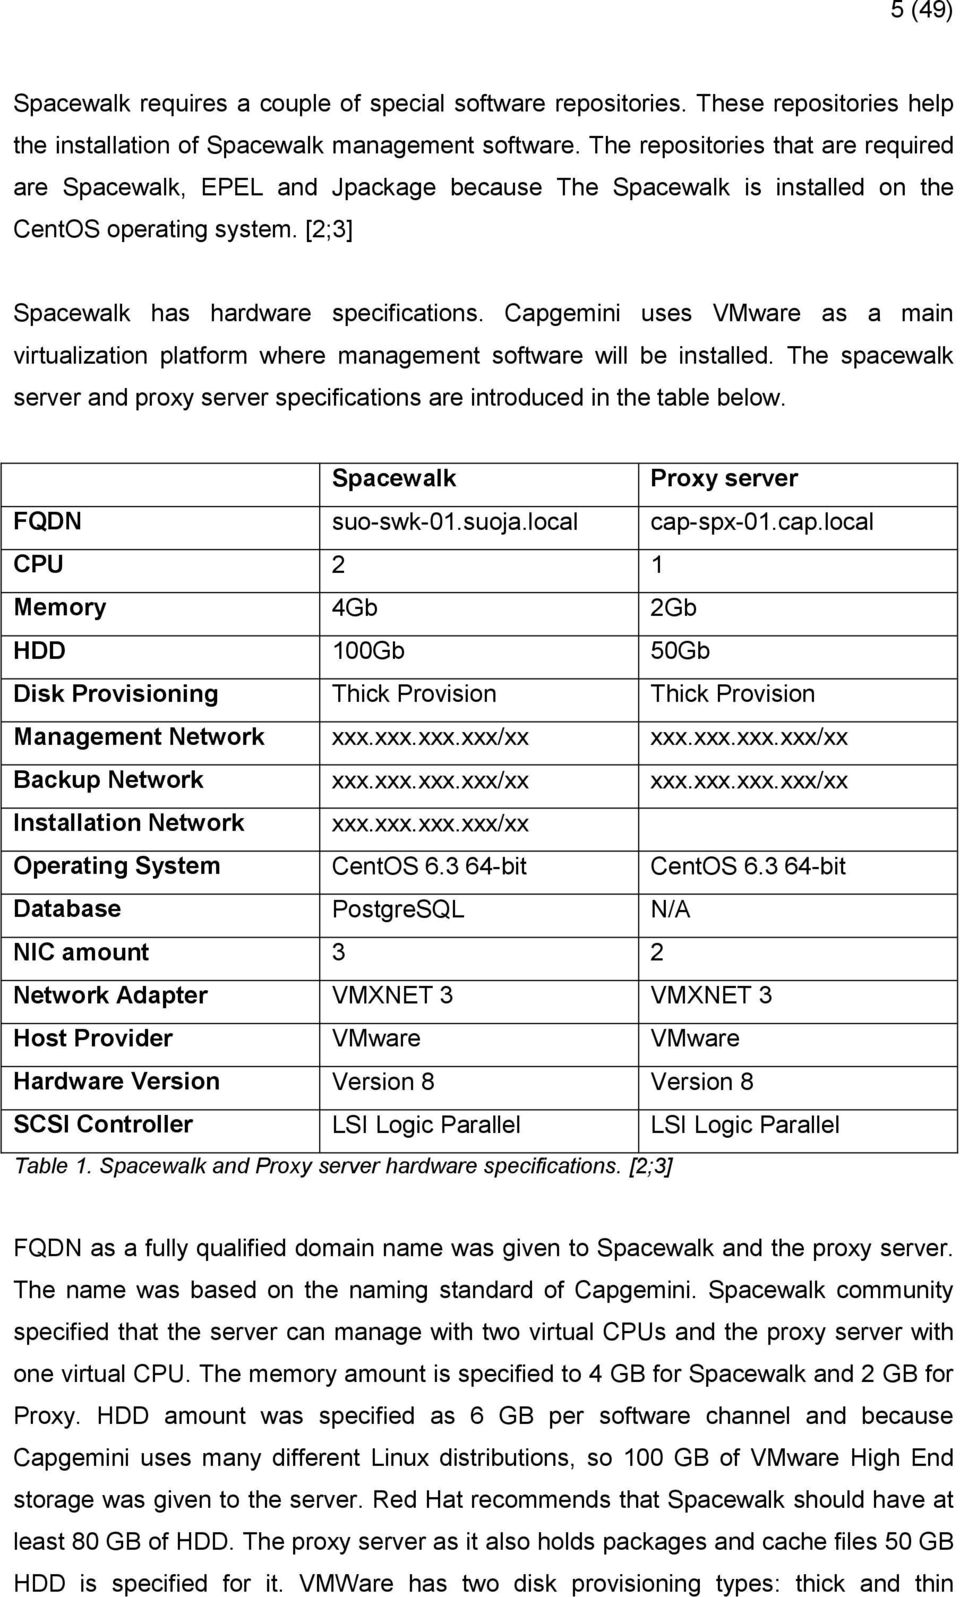 Capgemini uses VMware as a main virtualization platform where management software will be installed. The spacewalk server and proxy server specifications are introduced in the table below.